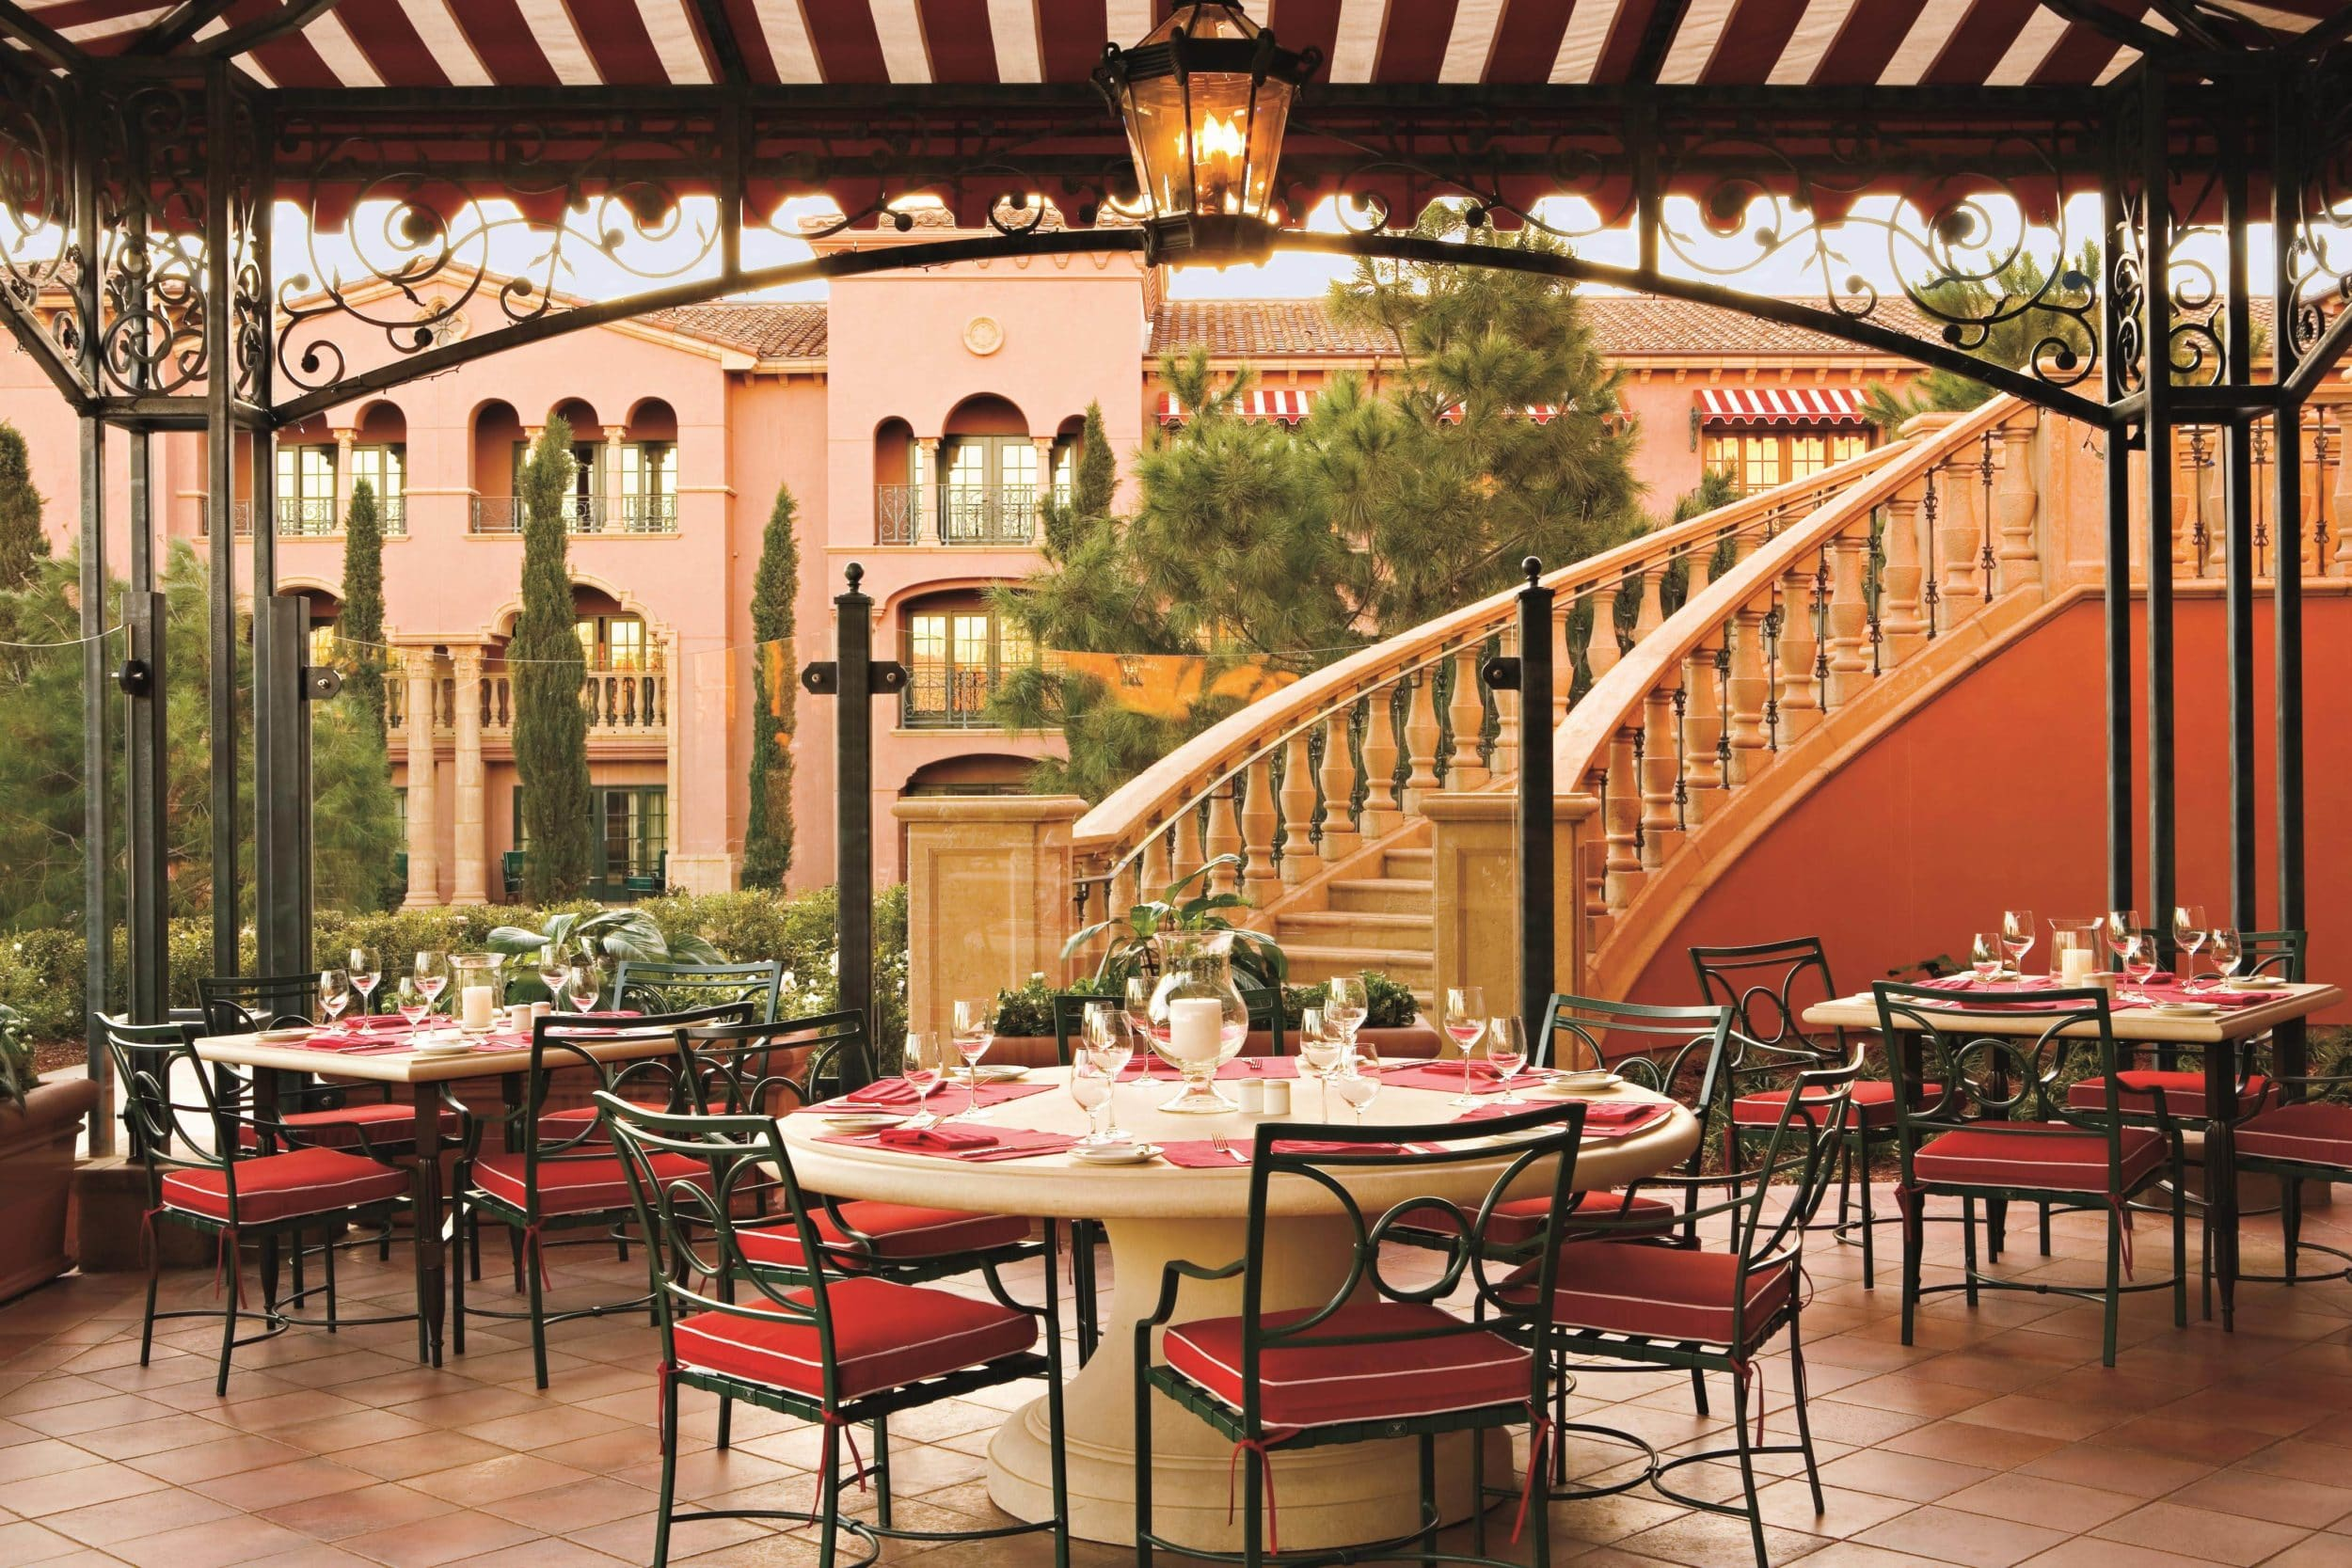 Amaya restaurant at Fairmont Grand Del Mar